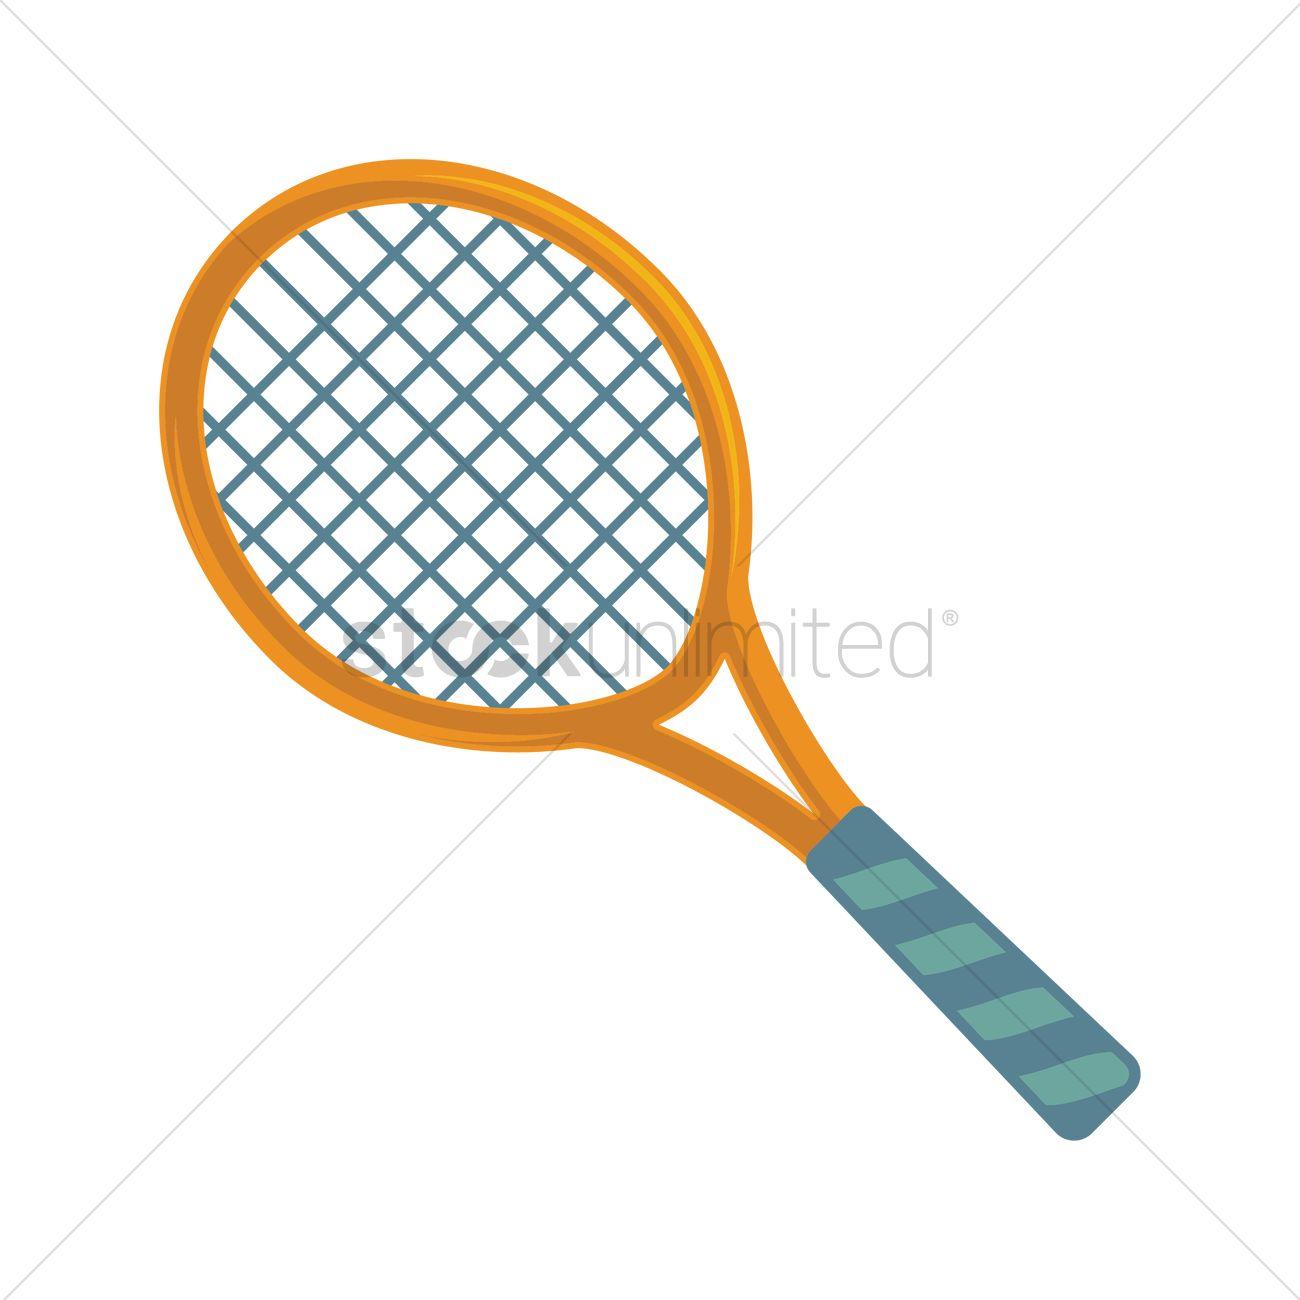 Tennis Racket Icon Vector Image 2032727 Stockunlimited